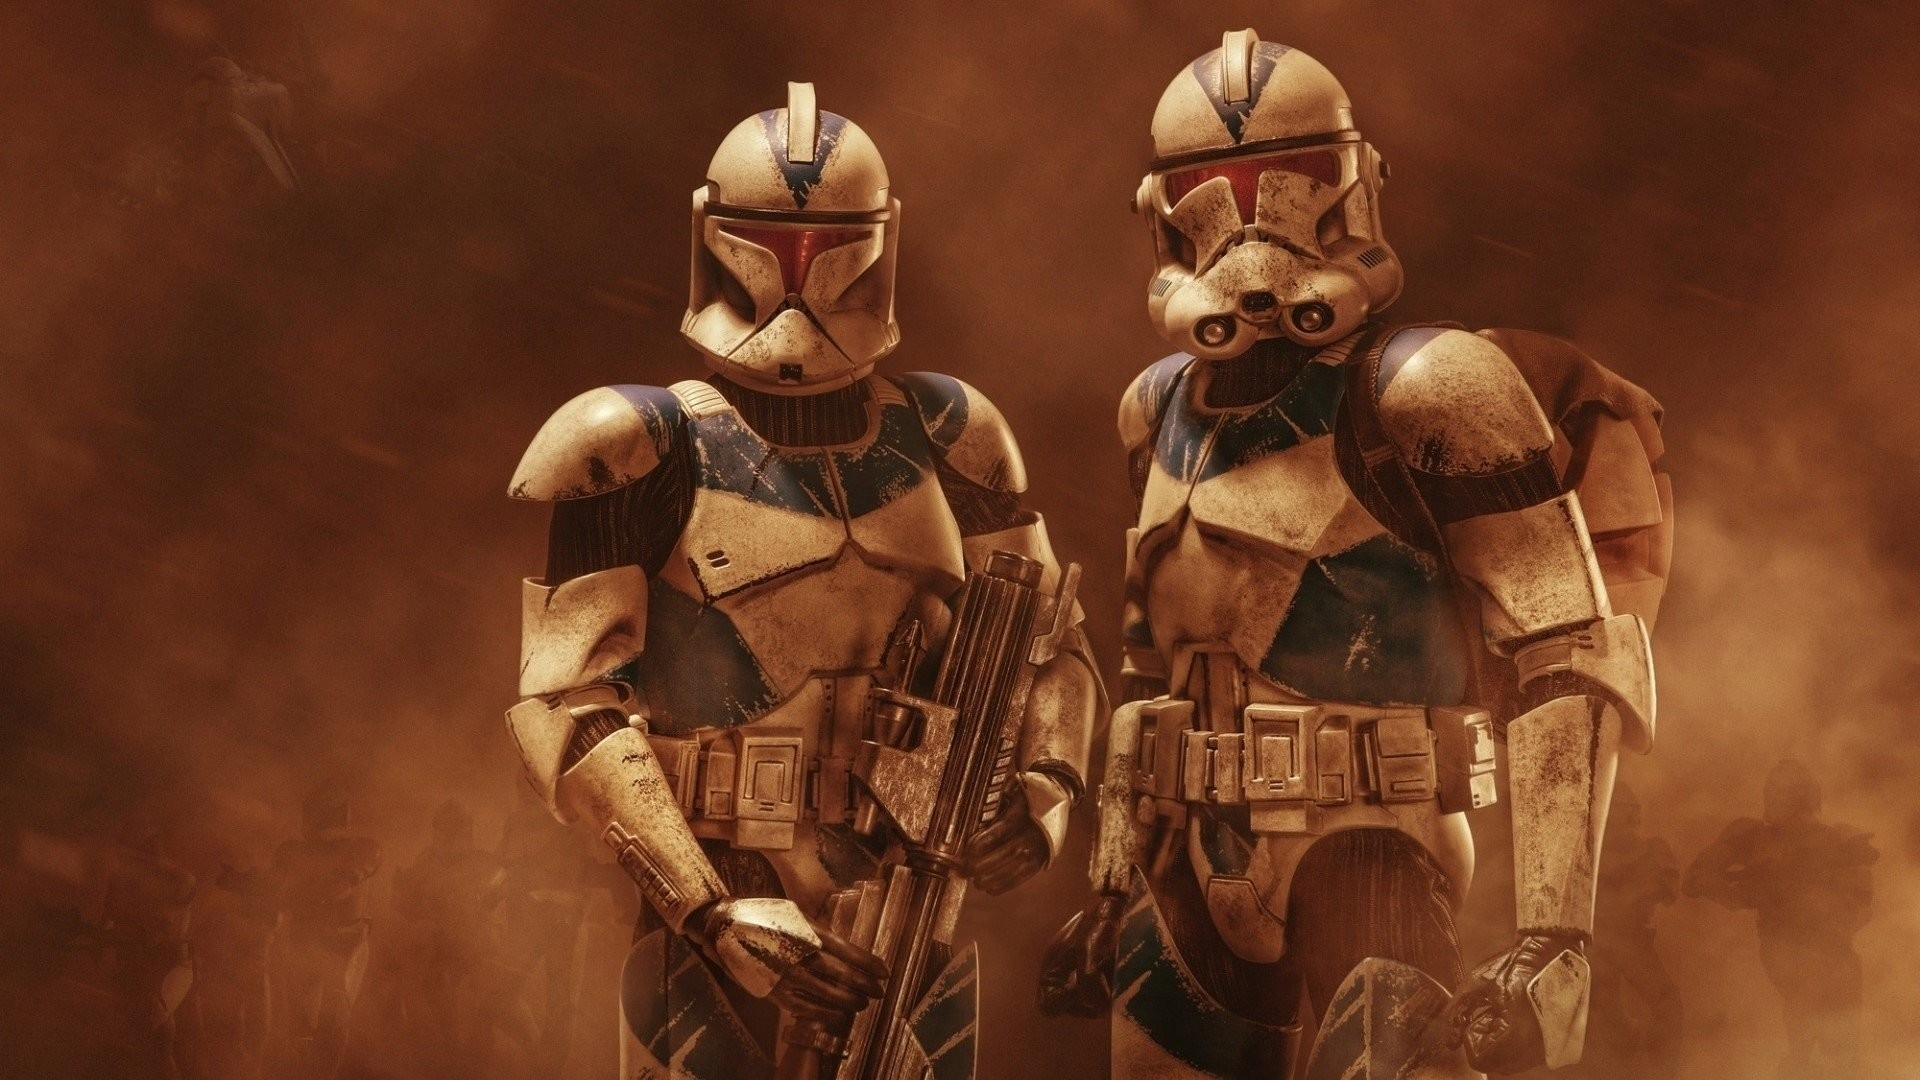 clone trooper wallpaper (72+ images)